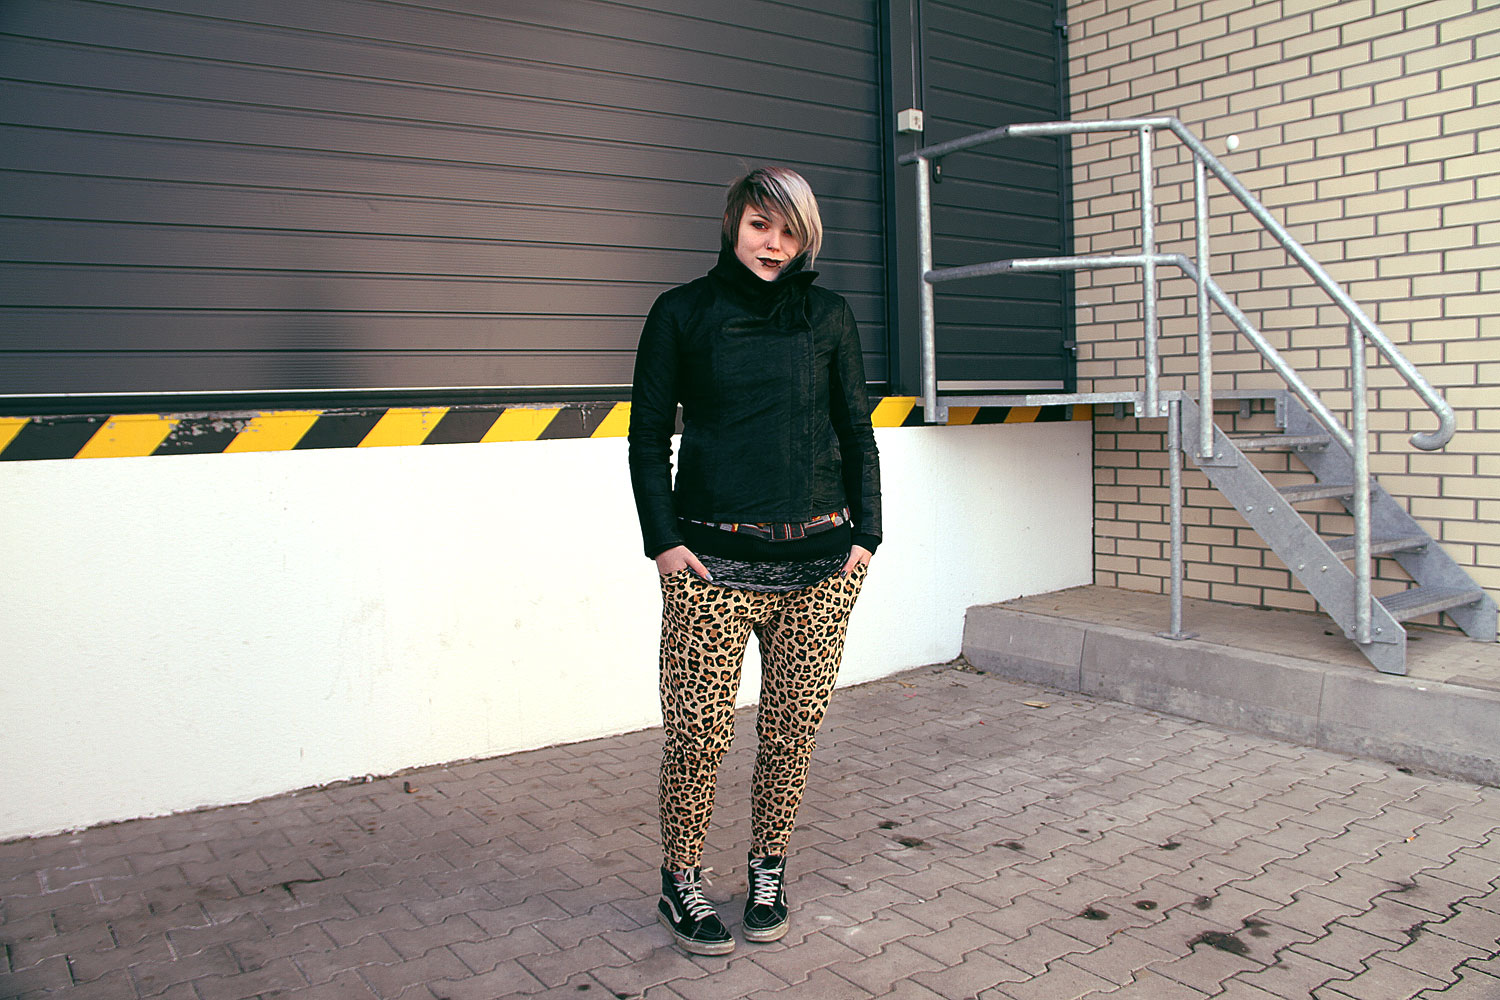 leopard, leo, h&m, jogger, jogginghose, berlin, berlin fashion, berlin streetstyle, berlin fashion blogger, blogger, fashion blogger, punk, grunge, punk fashion, grunge fashion, alternative, alternative fashion, alternative girl, altgirl, snakebites, girls with piercings, scenehair, greyhair, graue haare, salem, limecrime, killstar, vans, sk8 hi, sneakers, burned our, ausbrennmuster, ausbrenn, lederjacke, vegane lederjacke, kunstleder, venus, burning chruch, killstar, sweater, strick, herbst